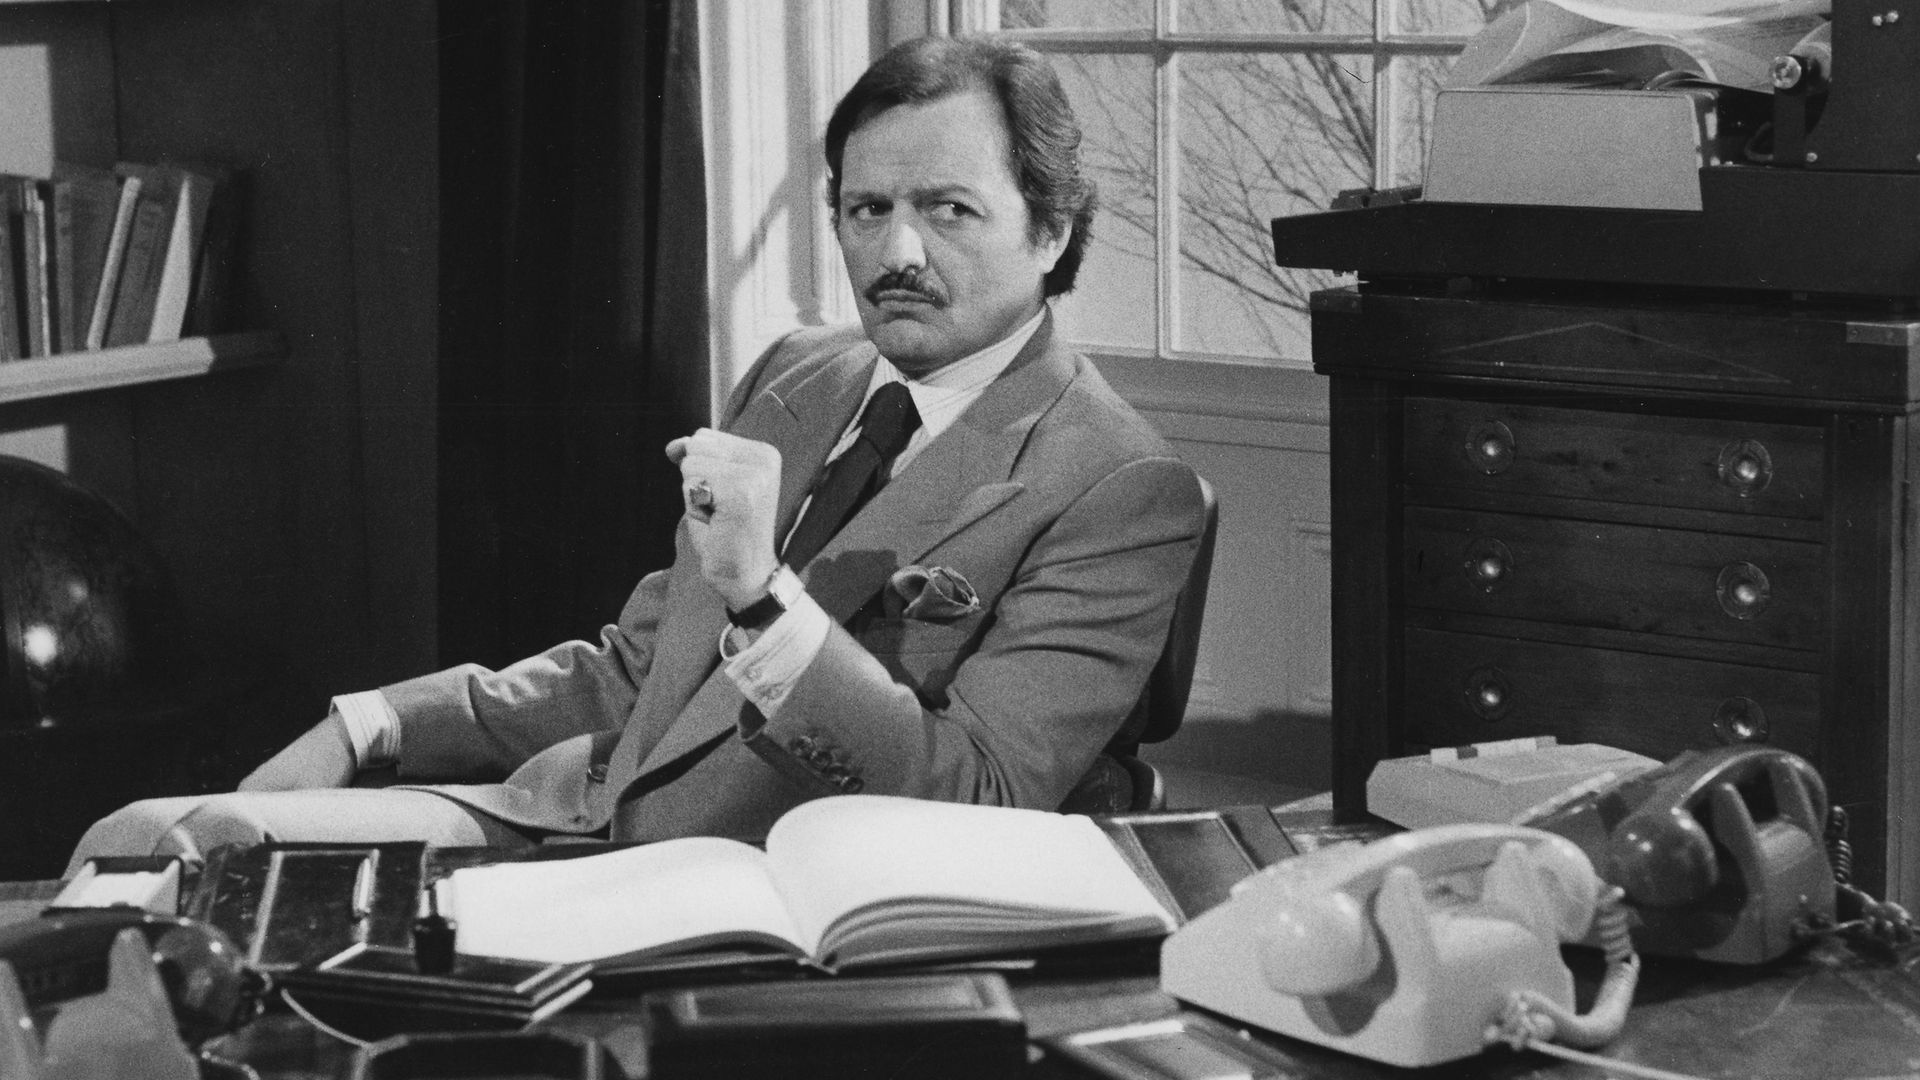 Peter Bowles in a scene from the television sitcom To the Manor Born in 1979 - Credit: Getty Images